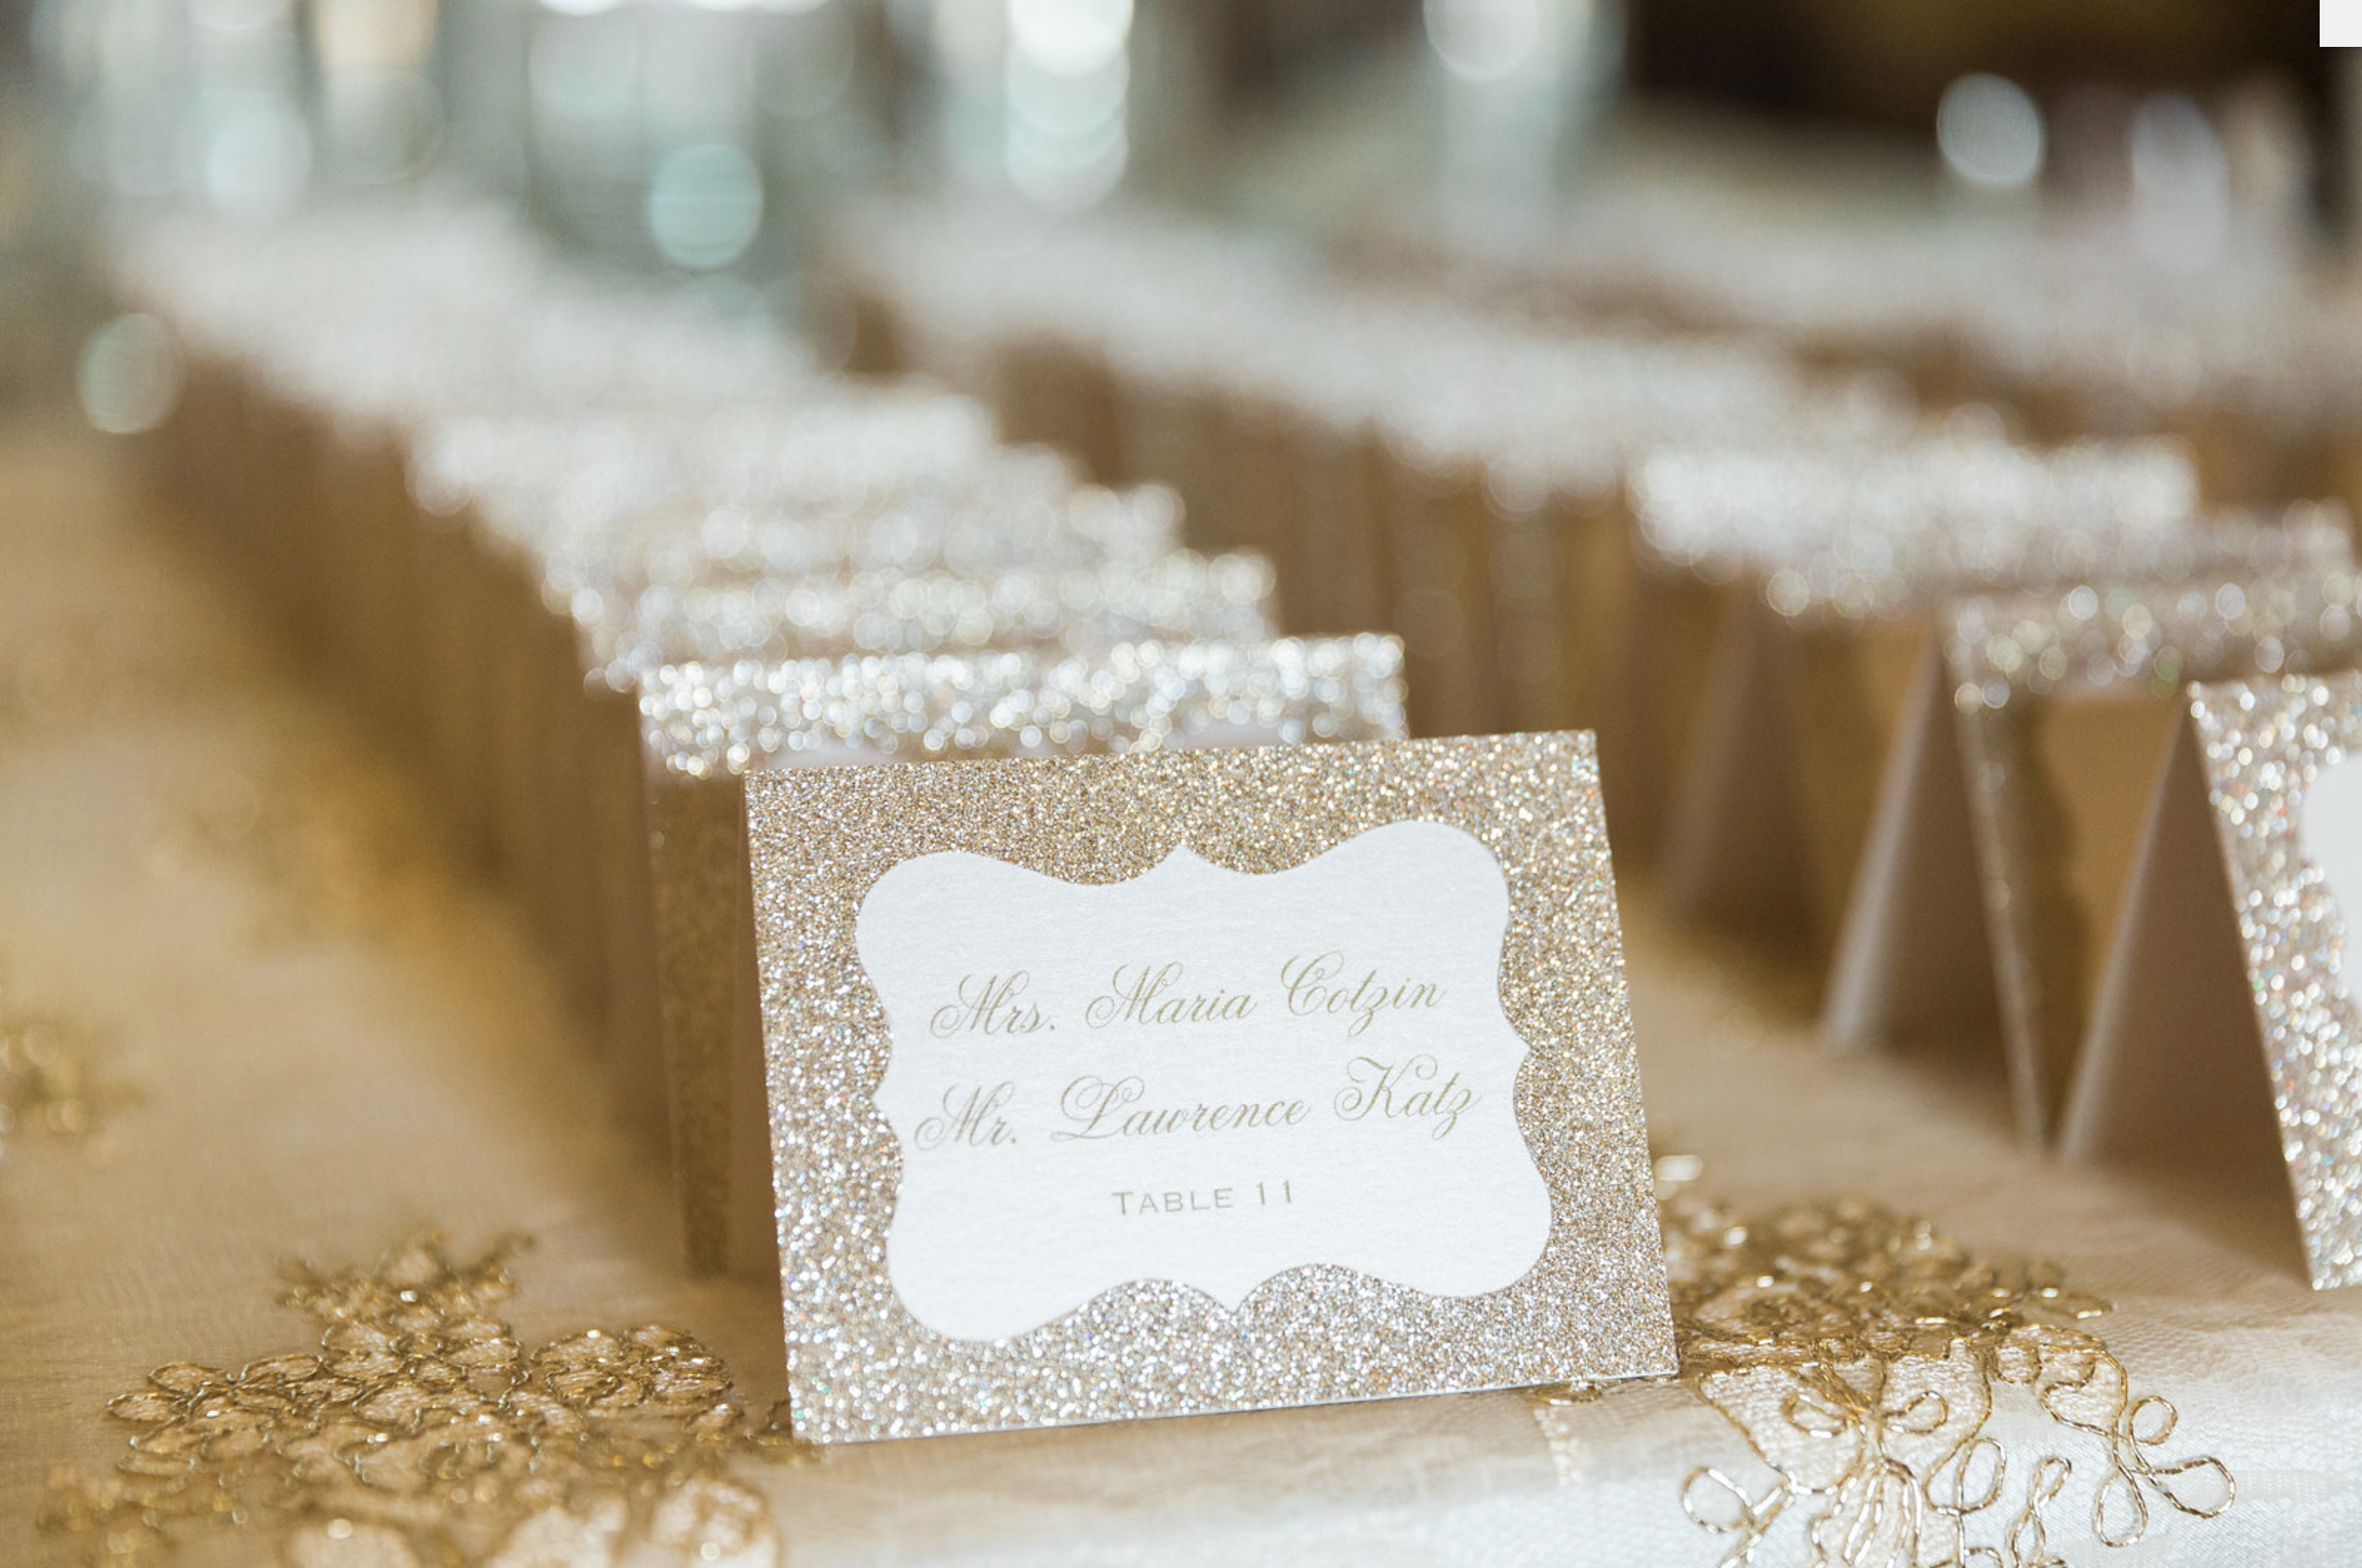 The Event Planner Walks Down The Aisle: Jessica & Simon | PAPER & LACE